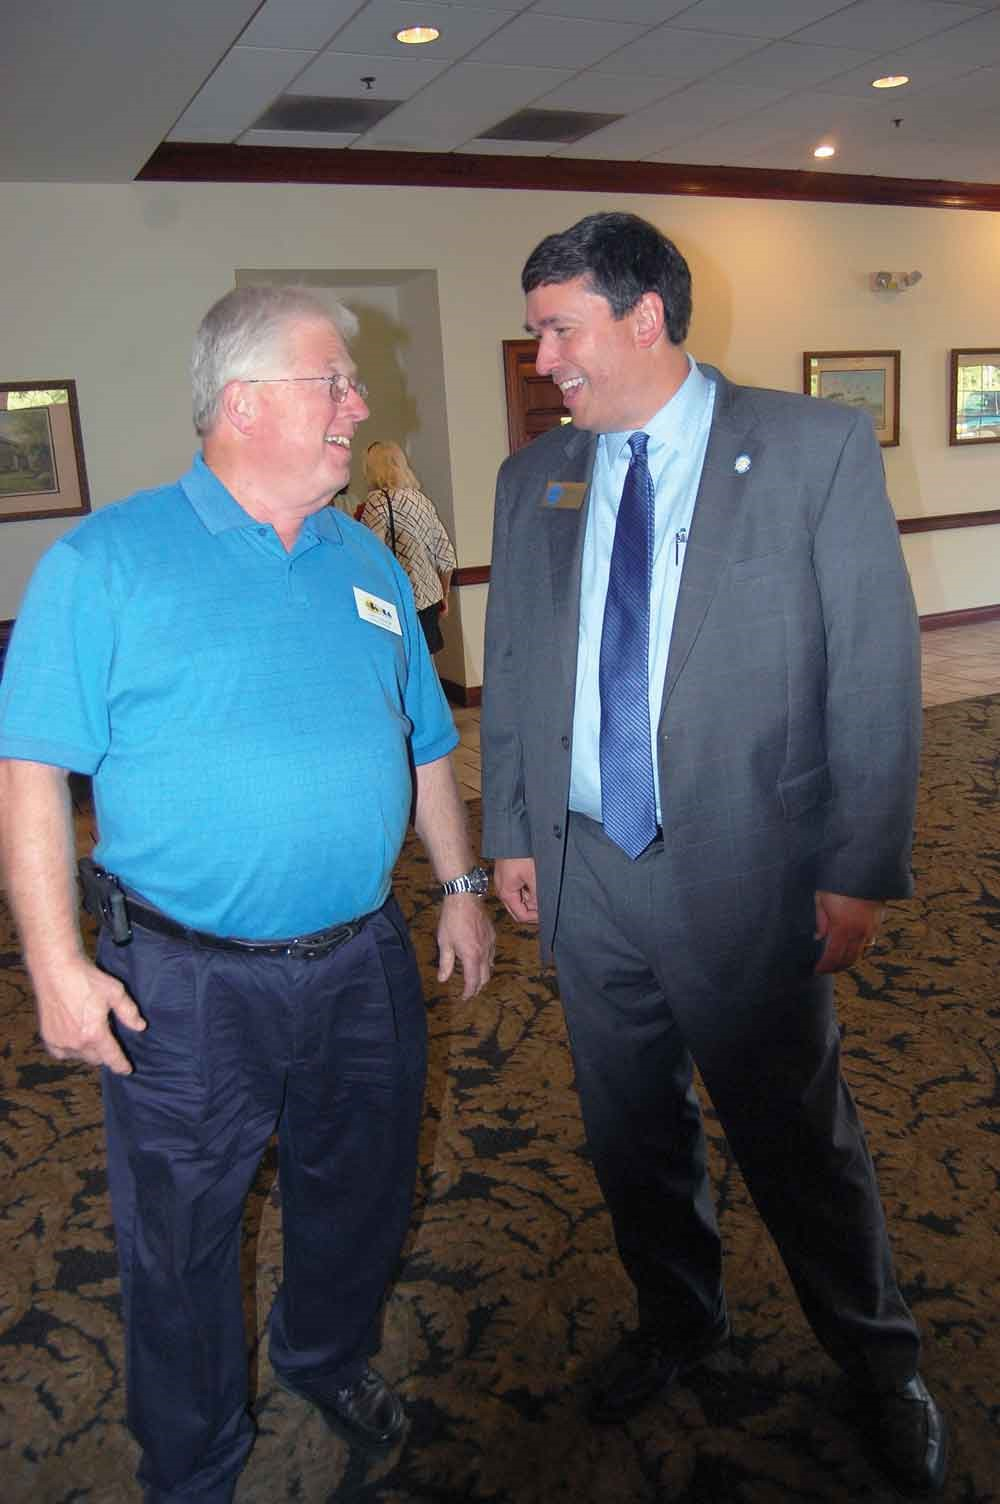 Among the dignitaries dropping in at this year's meetings was Kentucky Education Commissioner Stephen Pruitt (right) who shared a moment at the Fifth Region meeting in Shelby County with his local school board member, Larry Dodson of the Oldham County Board of Education. Dodson, who is running for another term in office, took the opportunity to ask Pruitt for his vote.